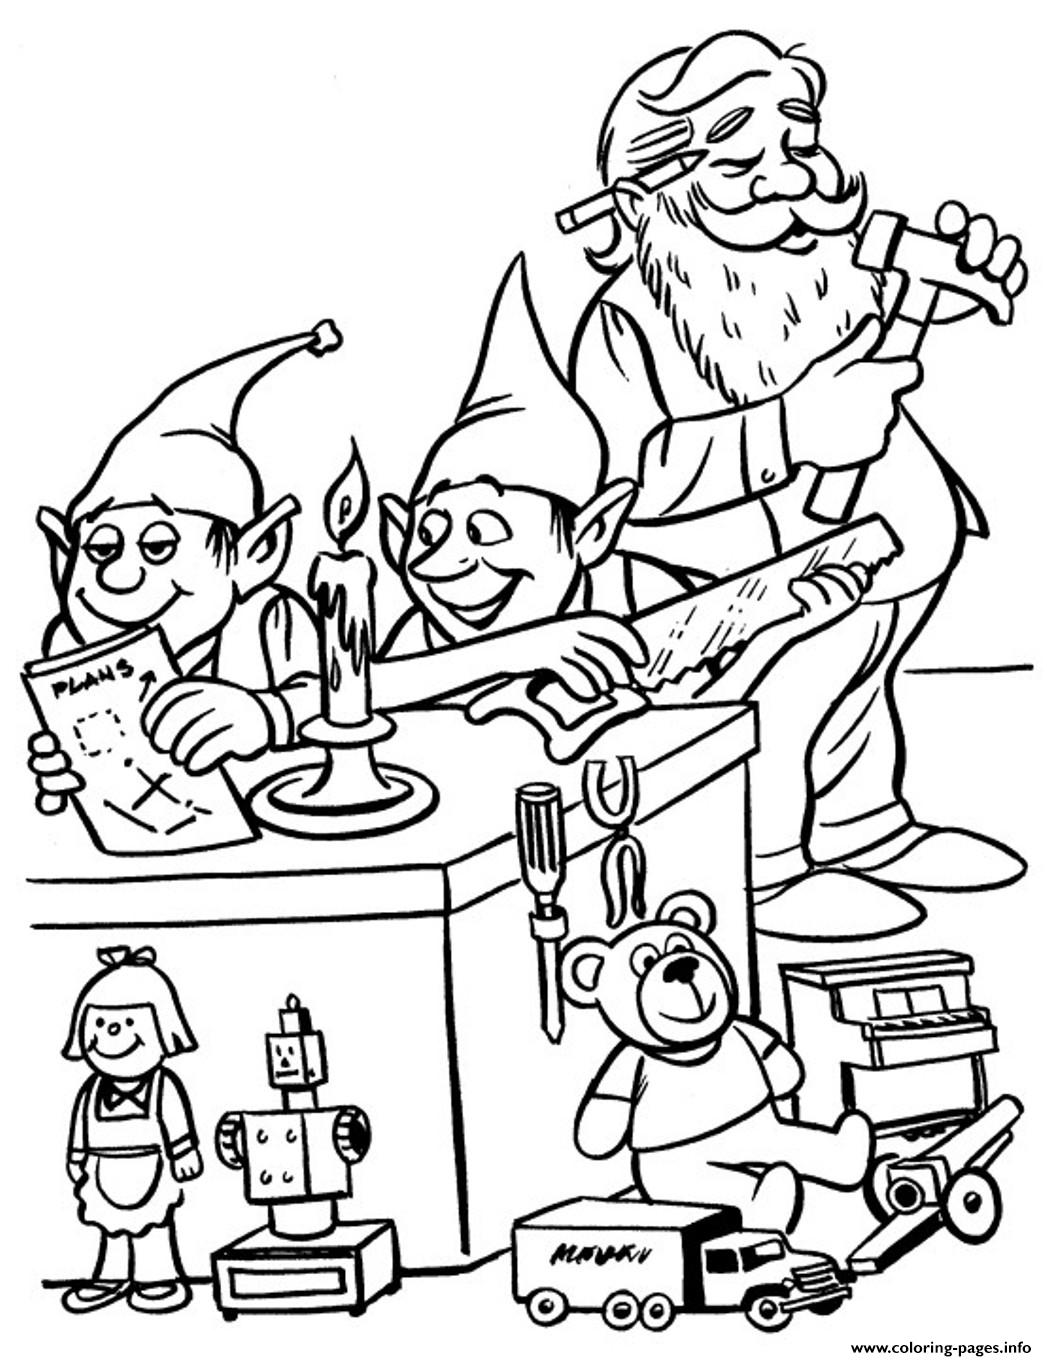 Santa S Elf Coloring Pages Printable With Elves And Christmas For Kids4a74